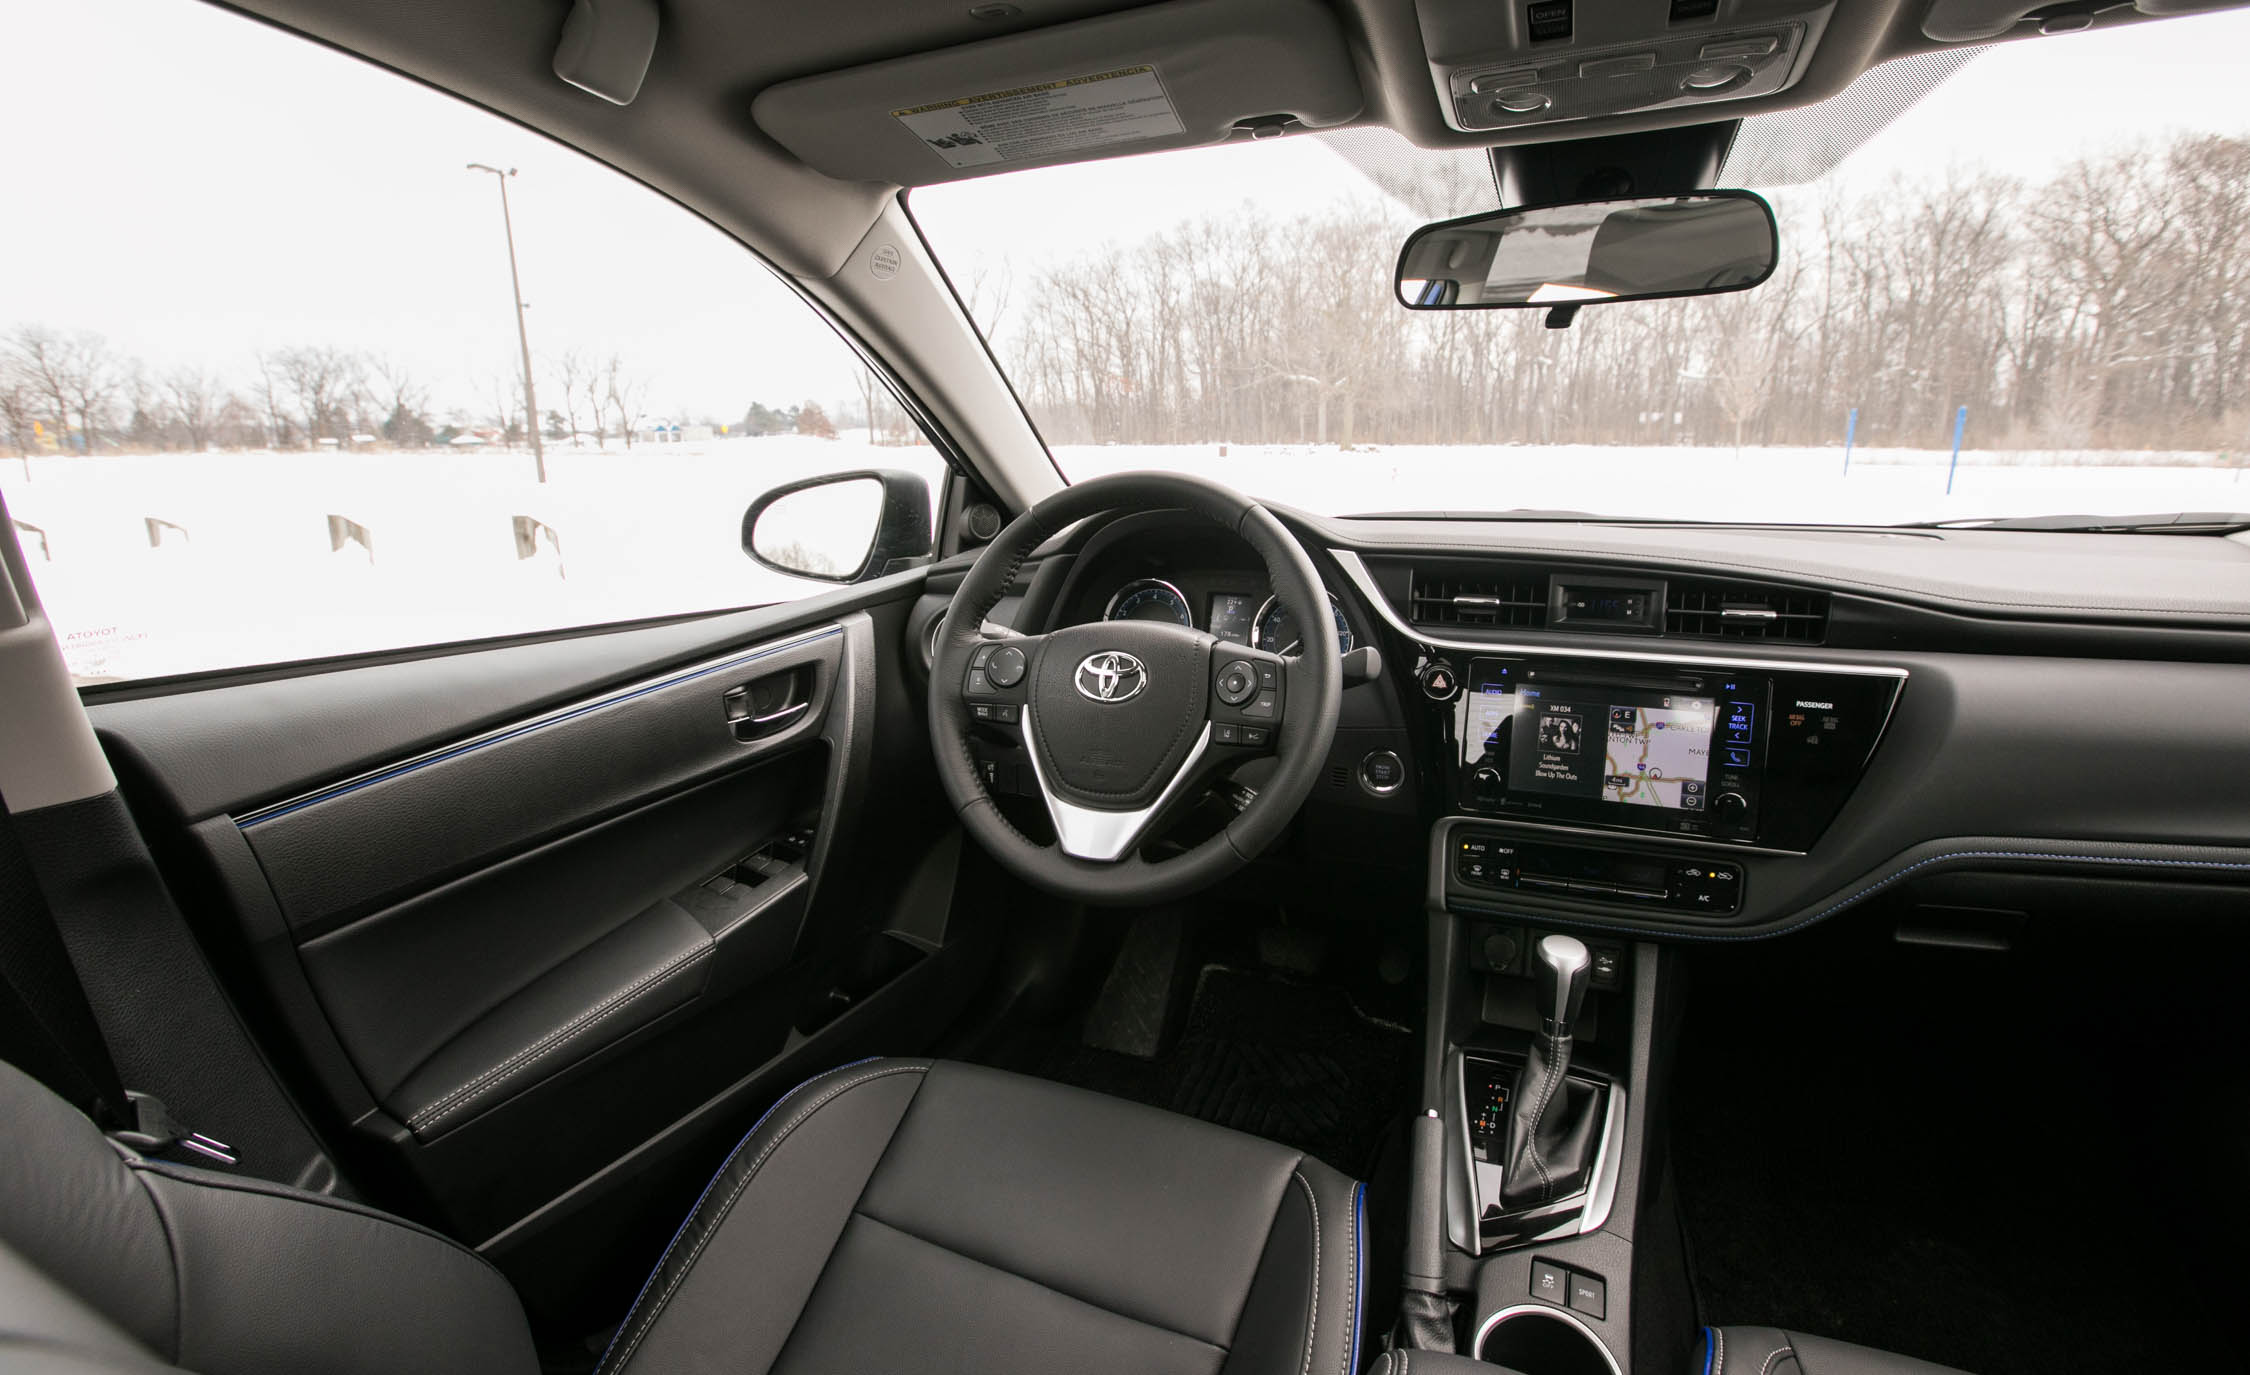 2017 Toyota Corolla XSE Interior Cockpit Driver (View 61 of 75)